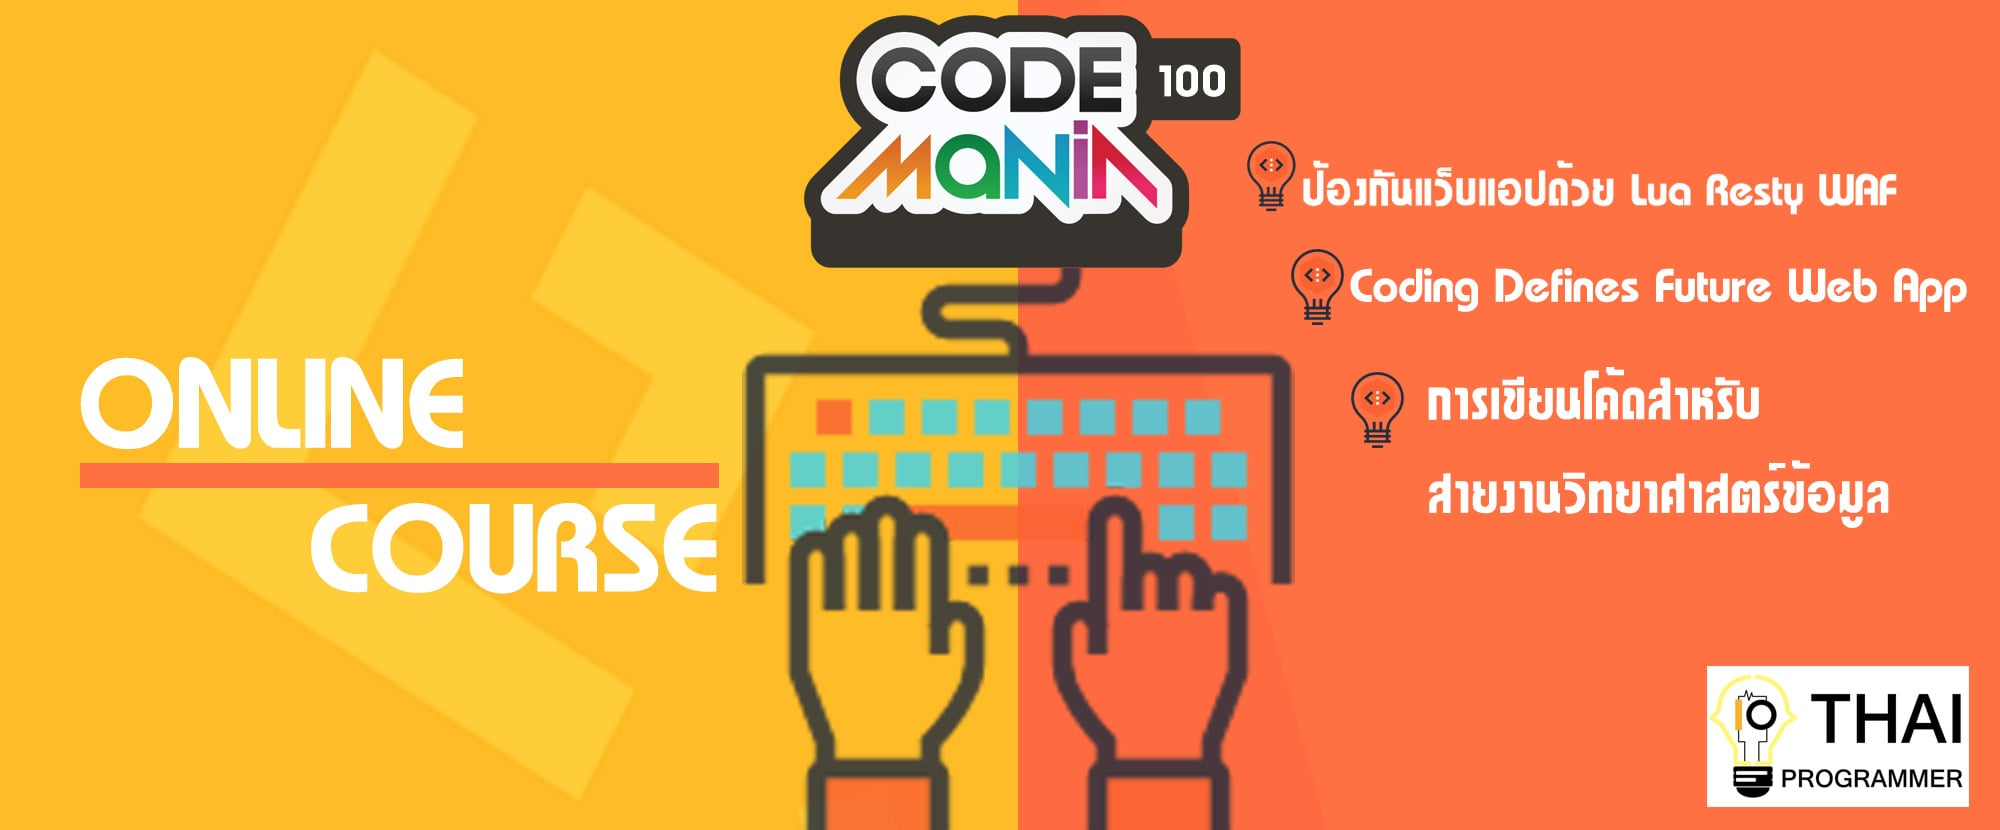 Code Mania 100 CodeMania100